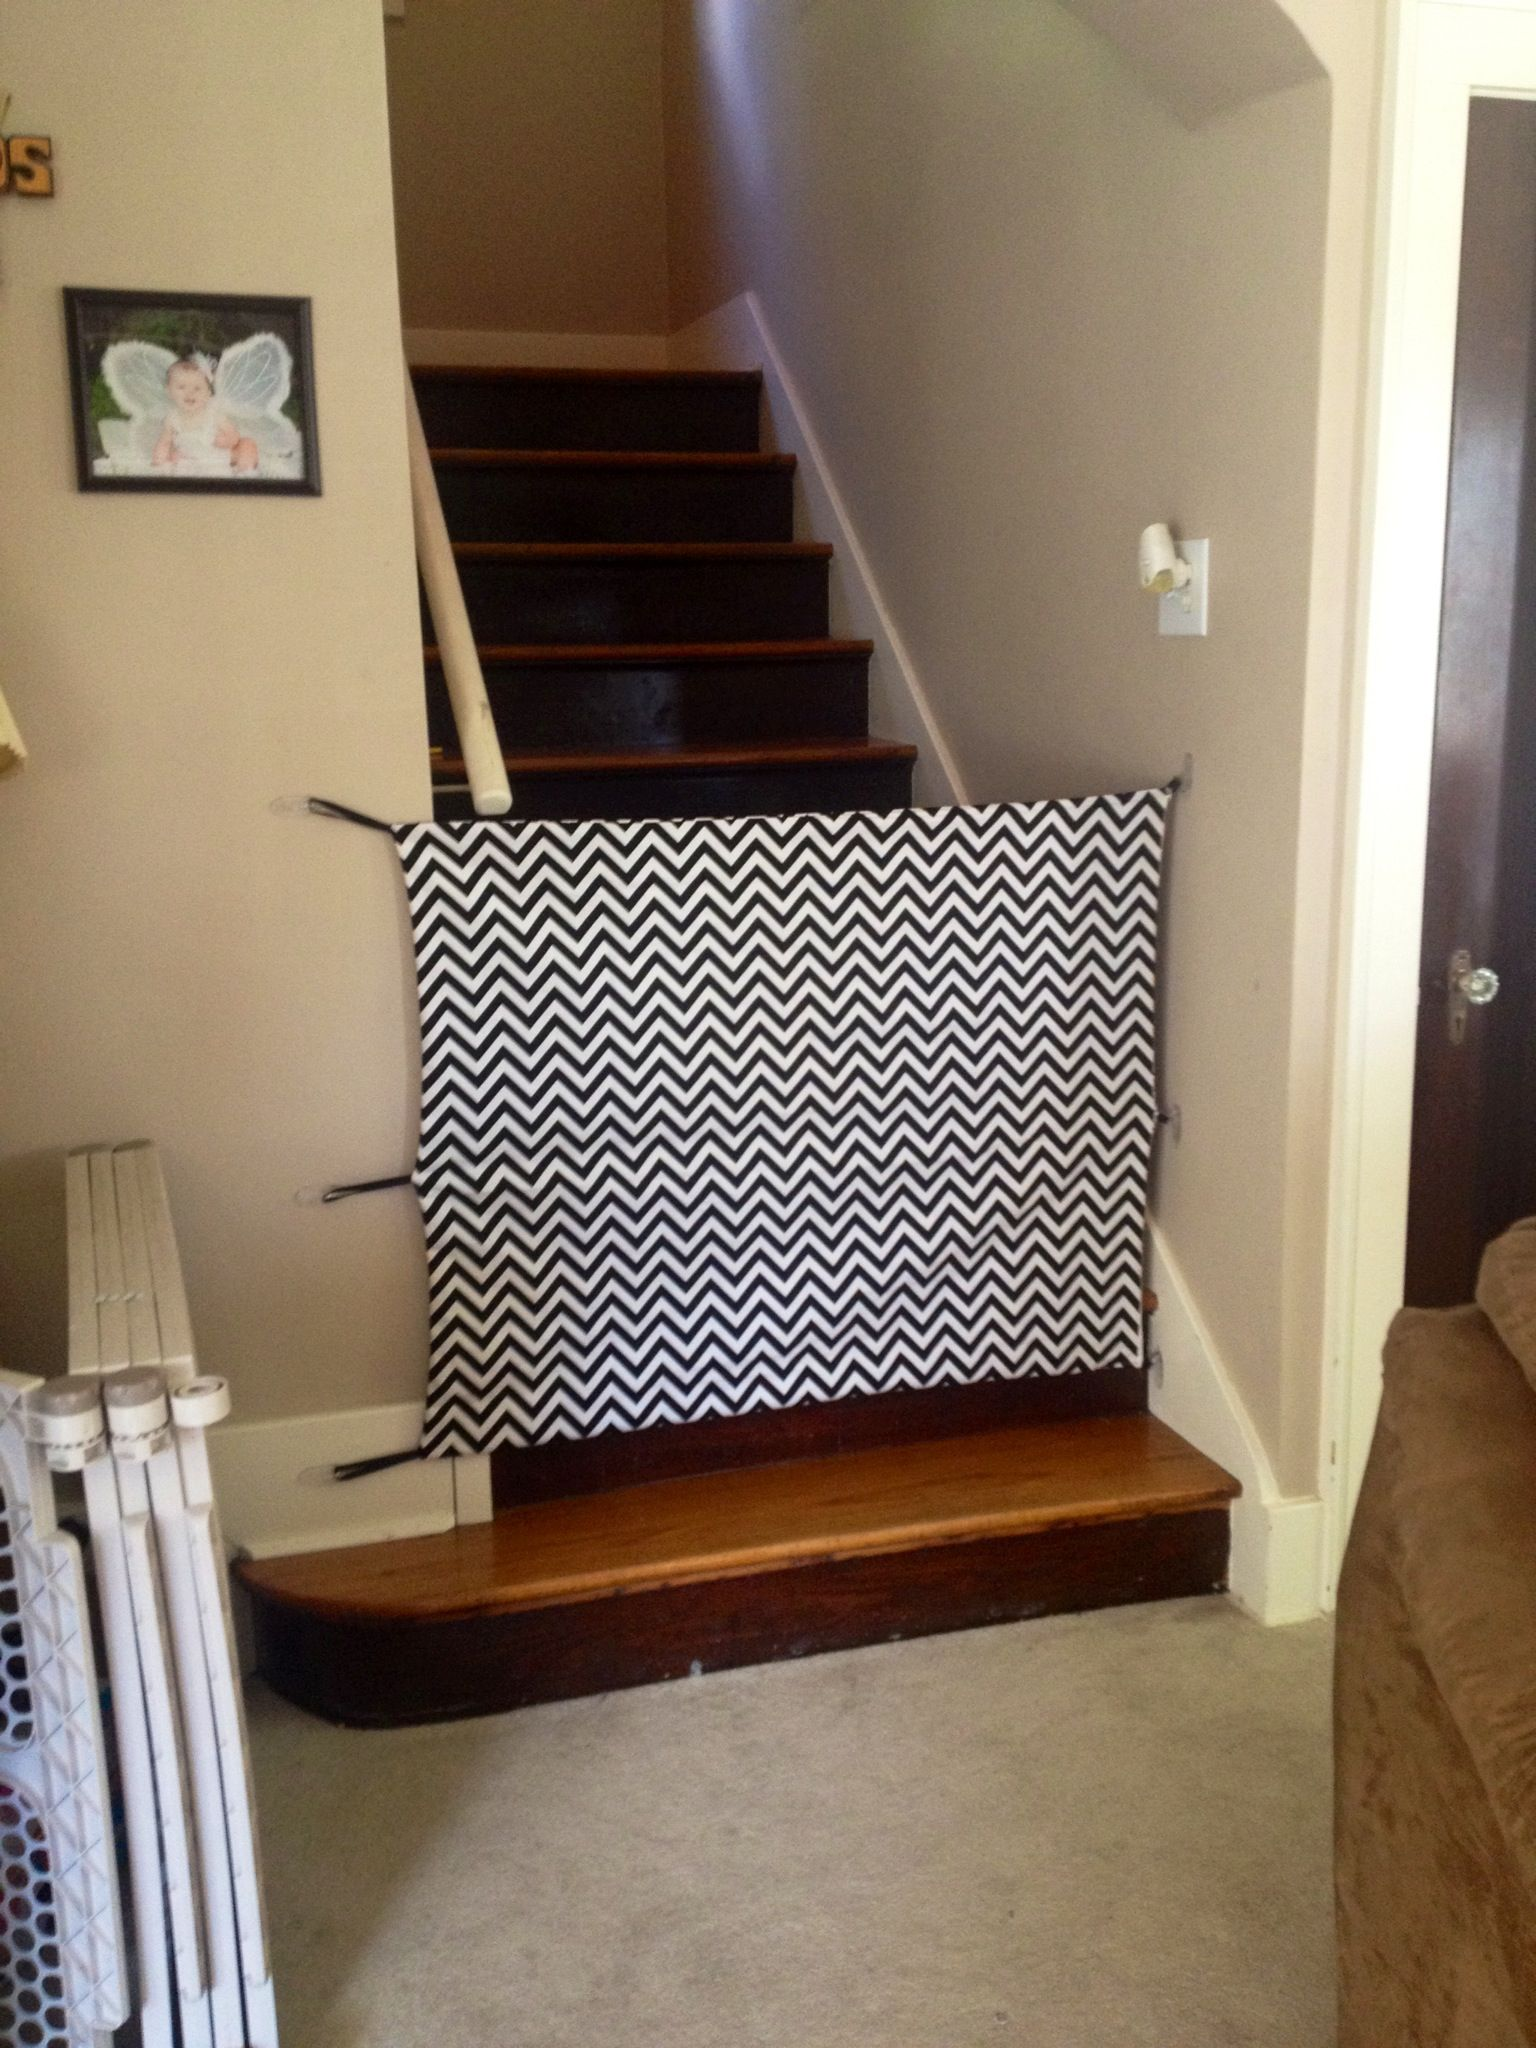 Le Meilleur Diy Fabric Baby Gate Cost Around 30 Total And It Looks Ce Mois Ci